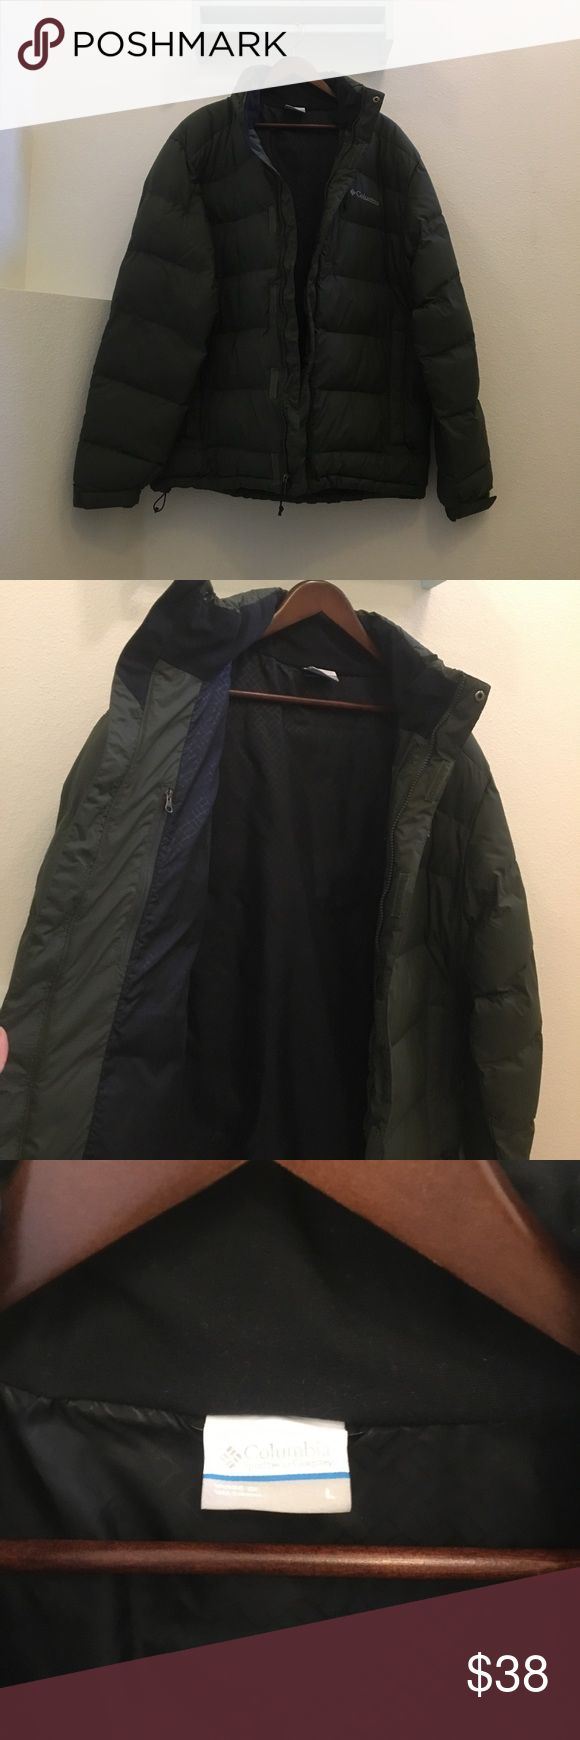 Columbia men's puffer coat NO TRADES!   Columbia men's army green puffer coat, size LARGE. In excellent lightly used condition.   Smoke/pet free home, all sales final.   I have zero control of shipping once in the hands of USPS. Columbia Jackets & Coats Puffers